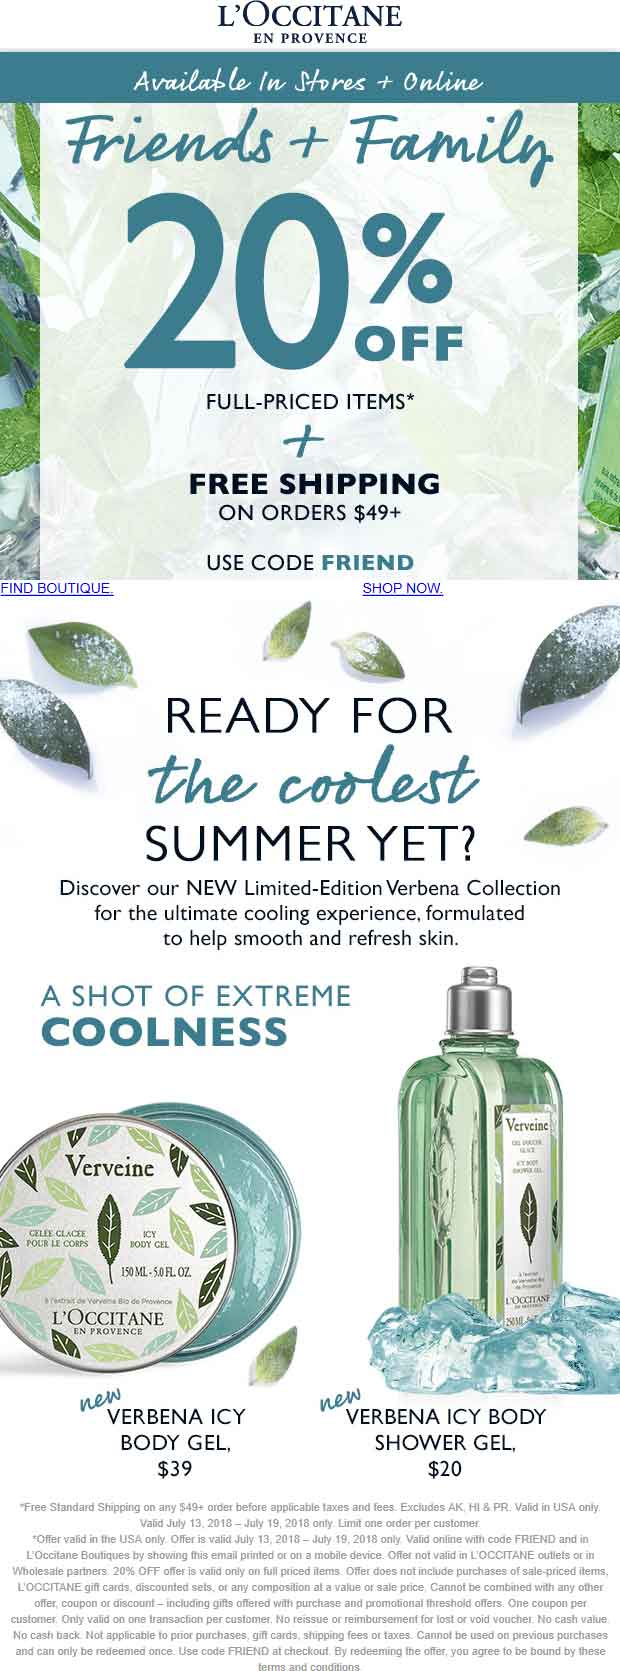 LOccitane Coupon December 2018 20% off at LOccitane, or online via promo code FRIEND